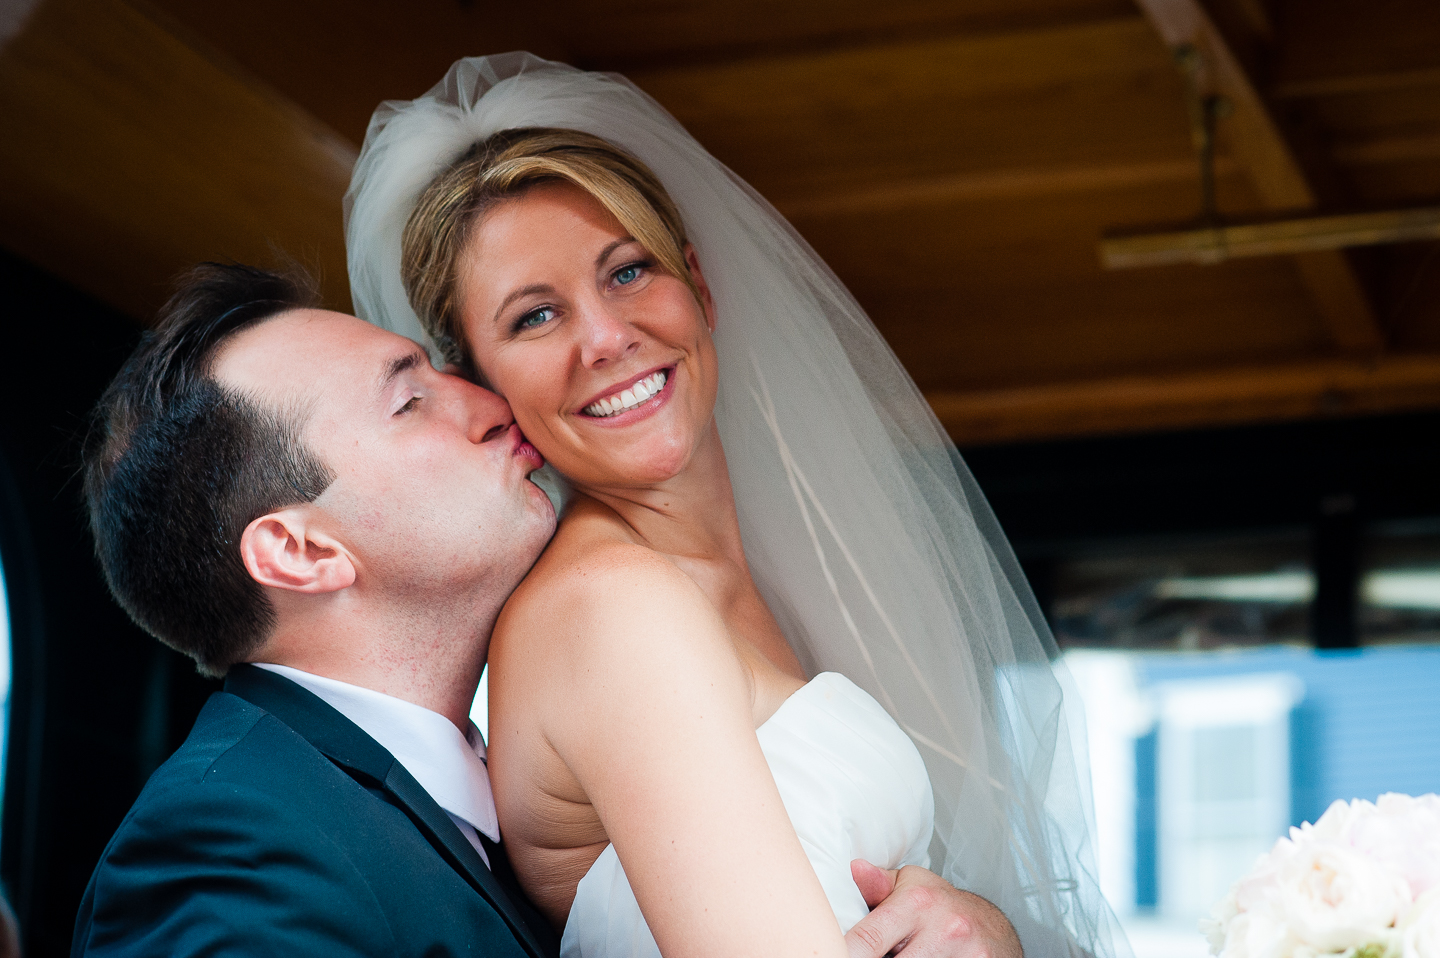 the groom gives his gorgeous bride a kiss on the cheek